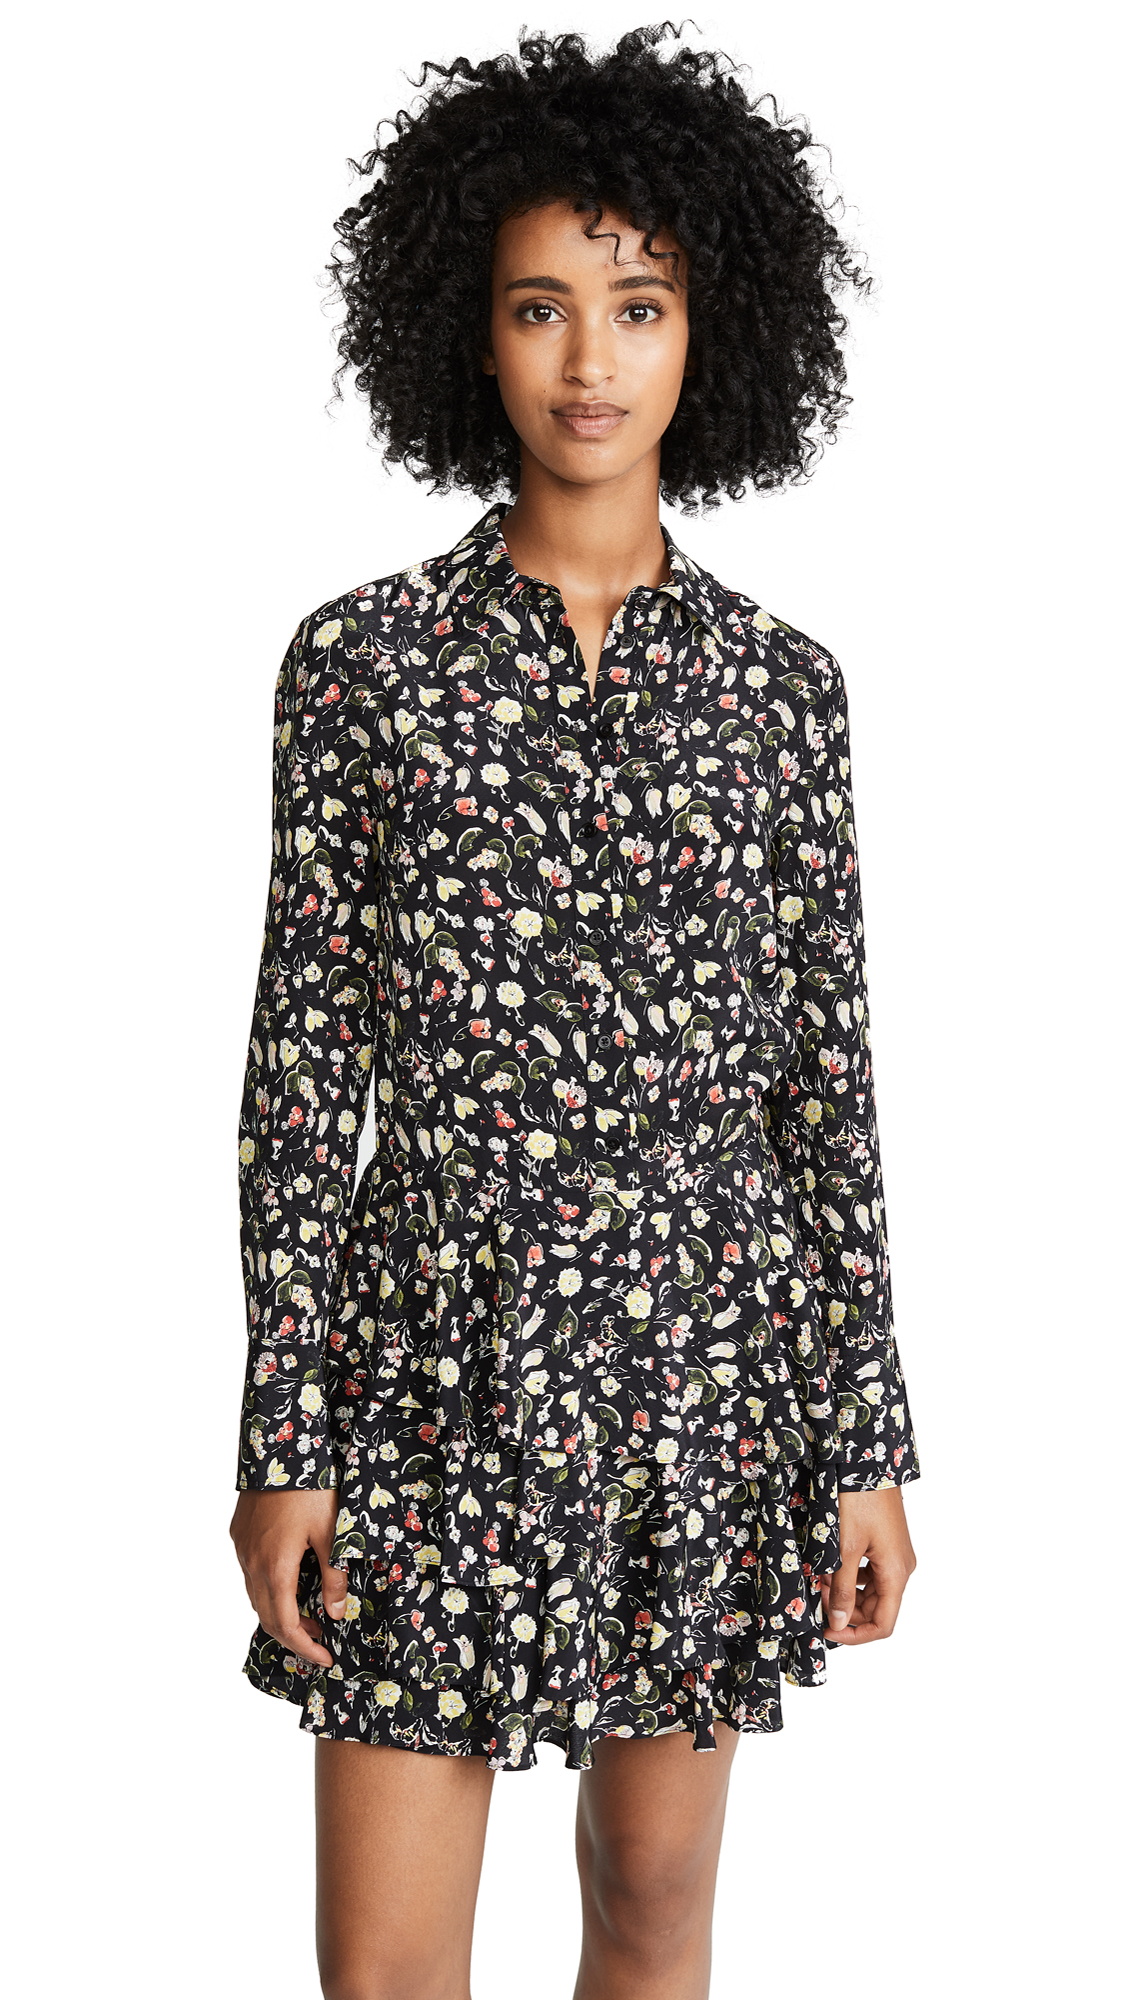 Jason Wu Grey Painterly Floral Dress In Black Floral